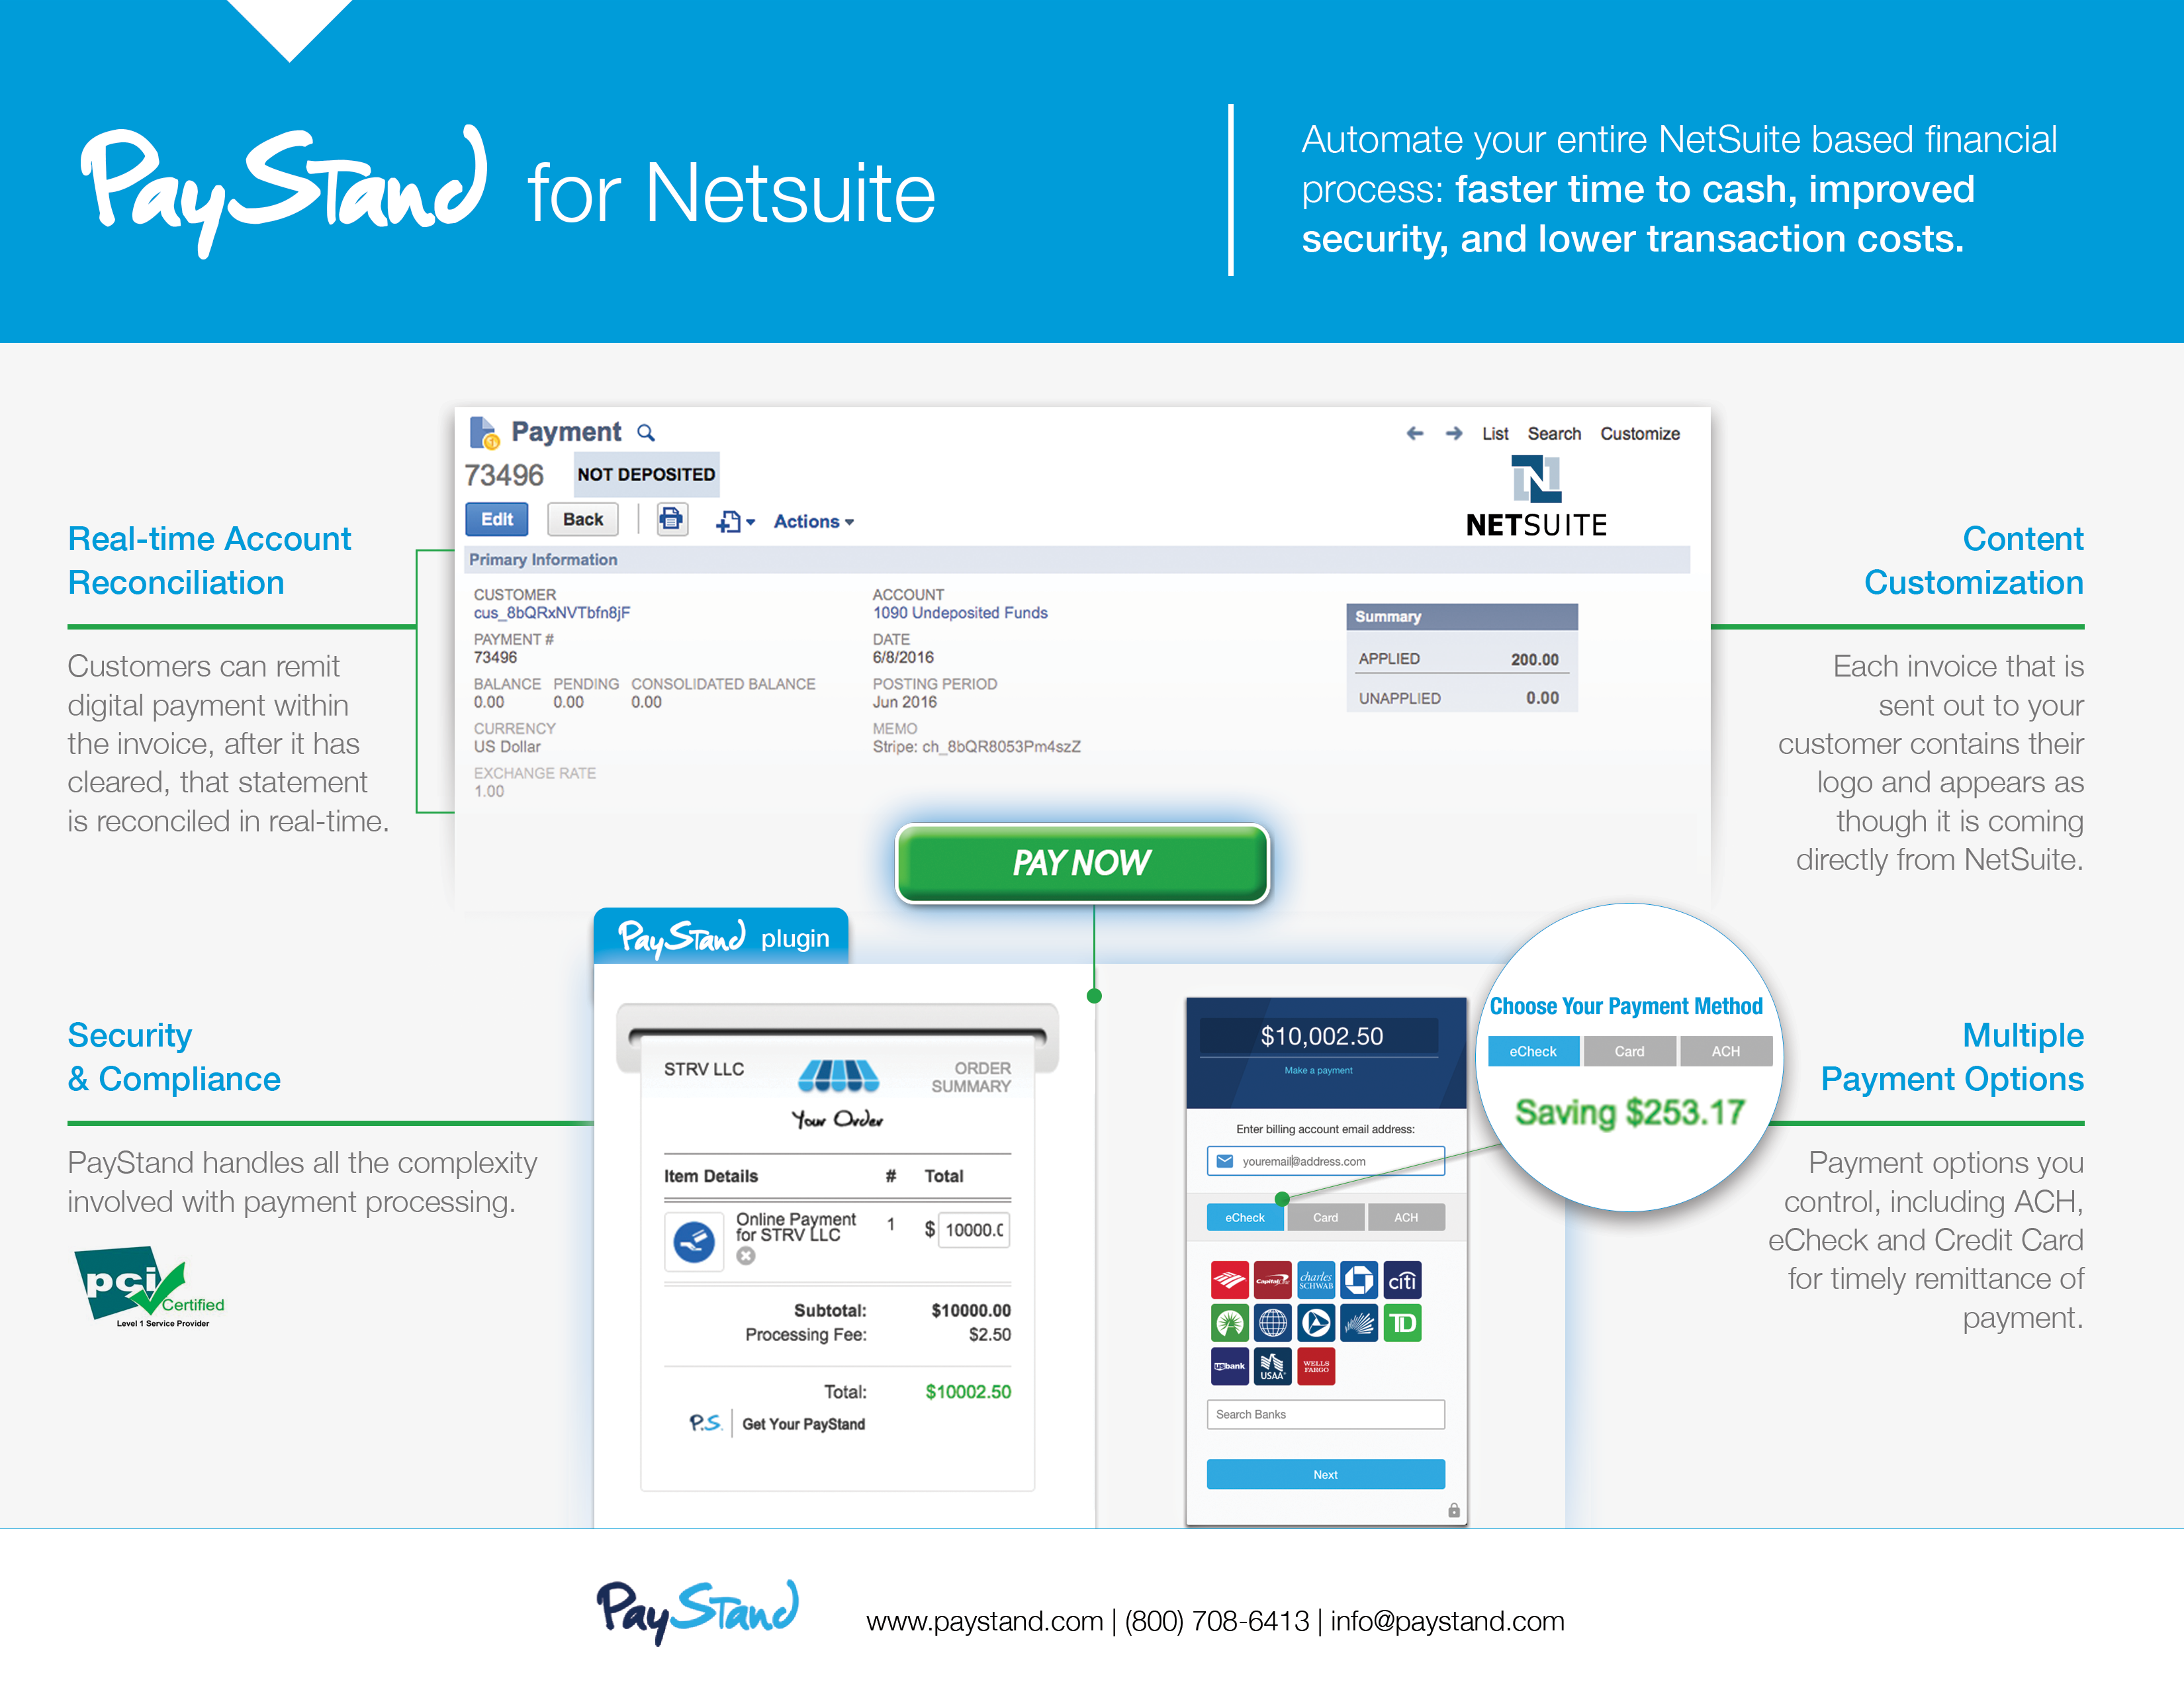 paystand_netsuite_infosheet-1.png